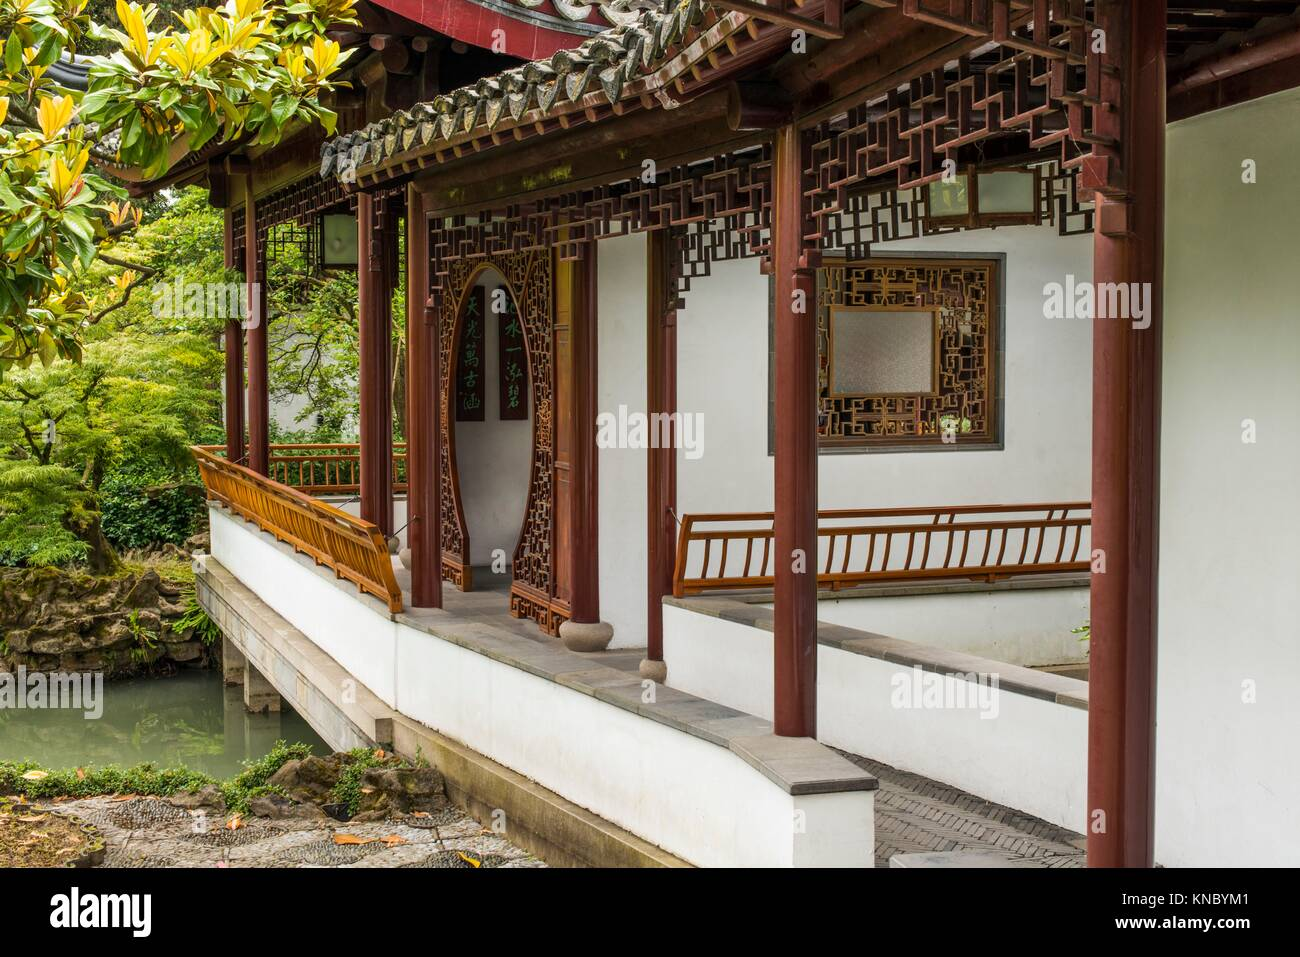 Dr Sun Yat-Sen Classical Chinese Garden, in Chinatown, Vancouver, BC ...